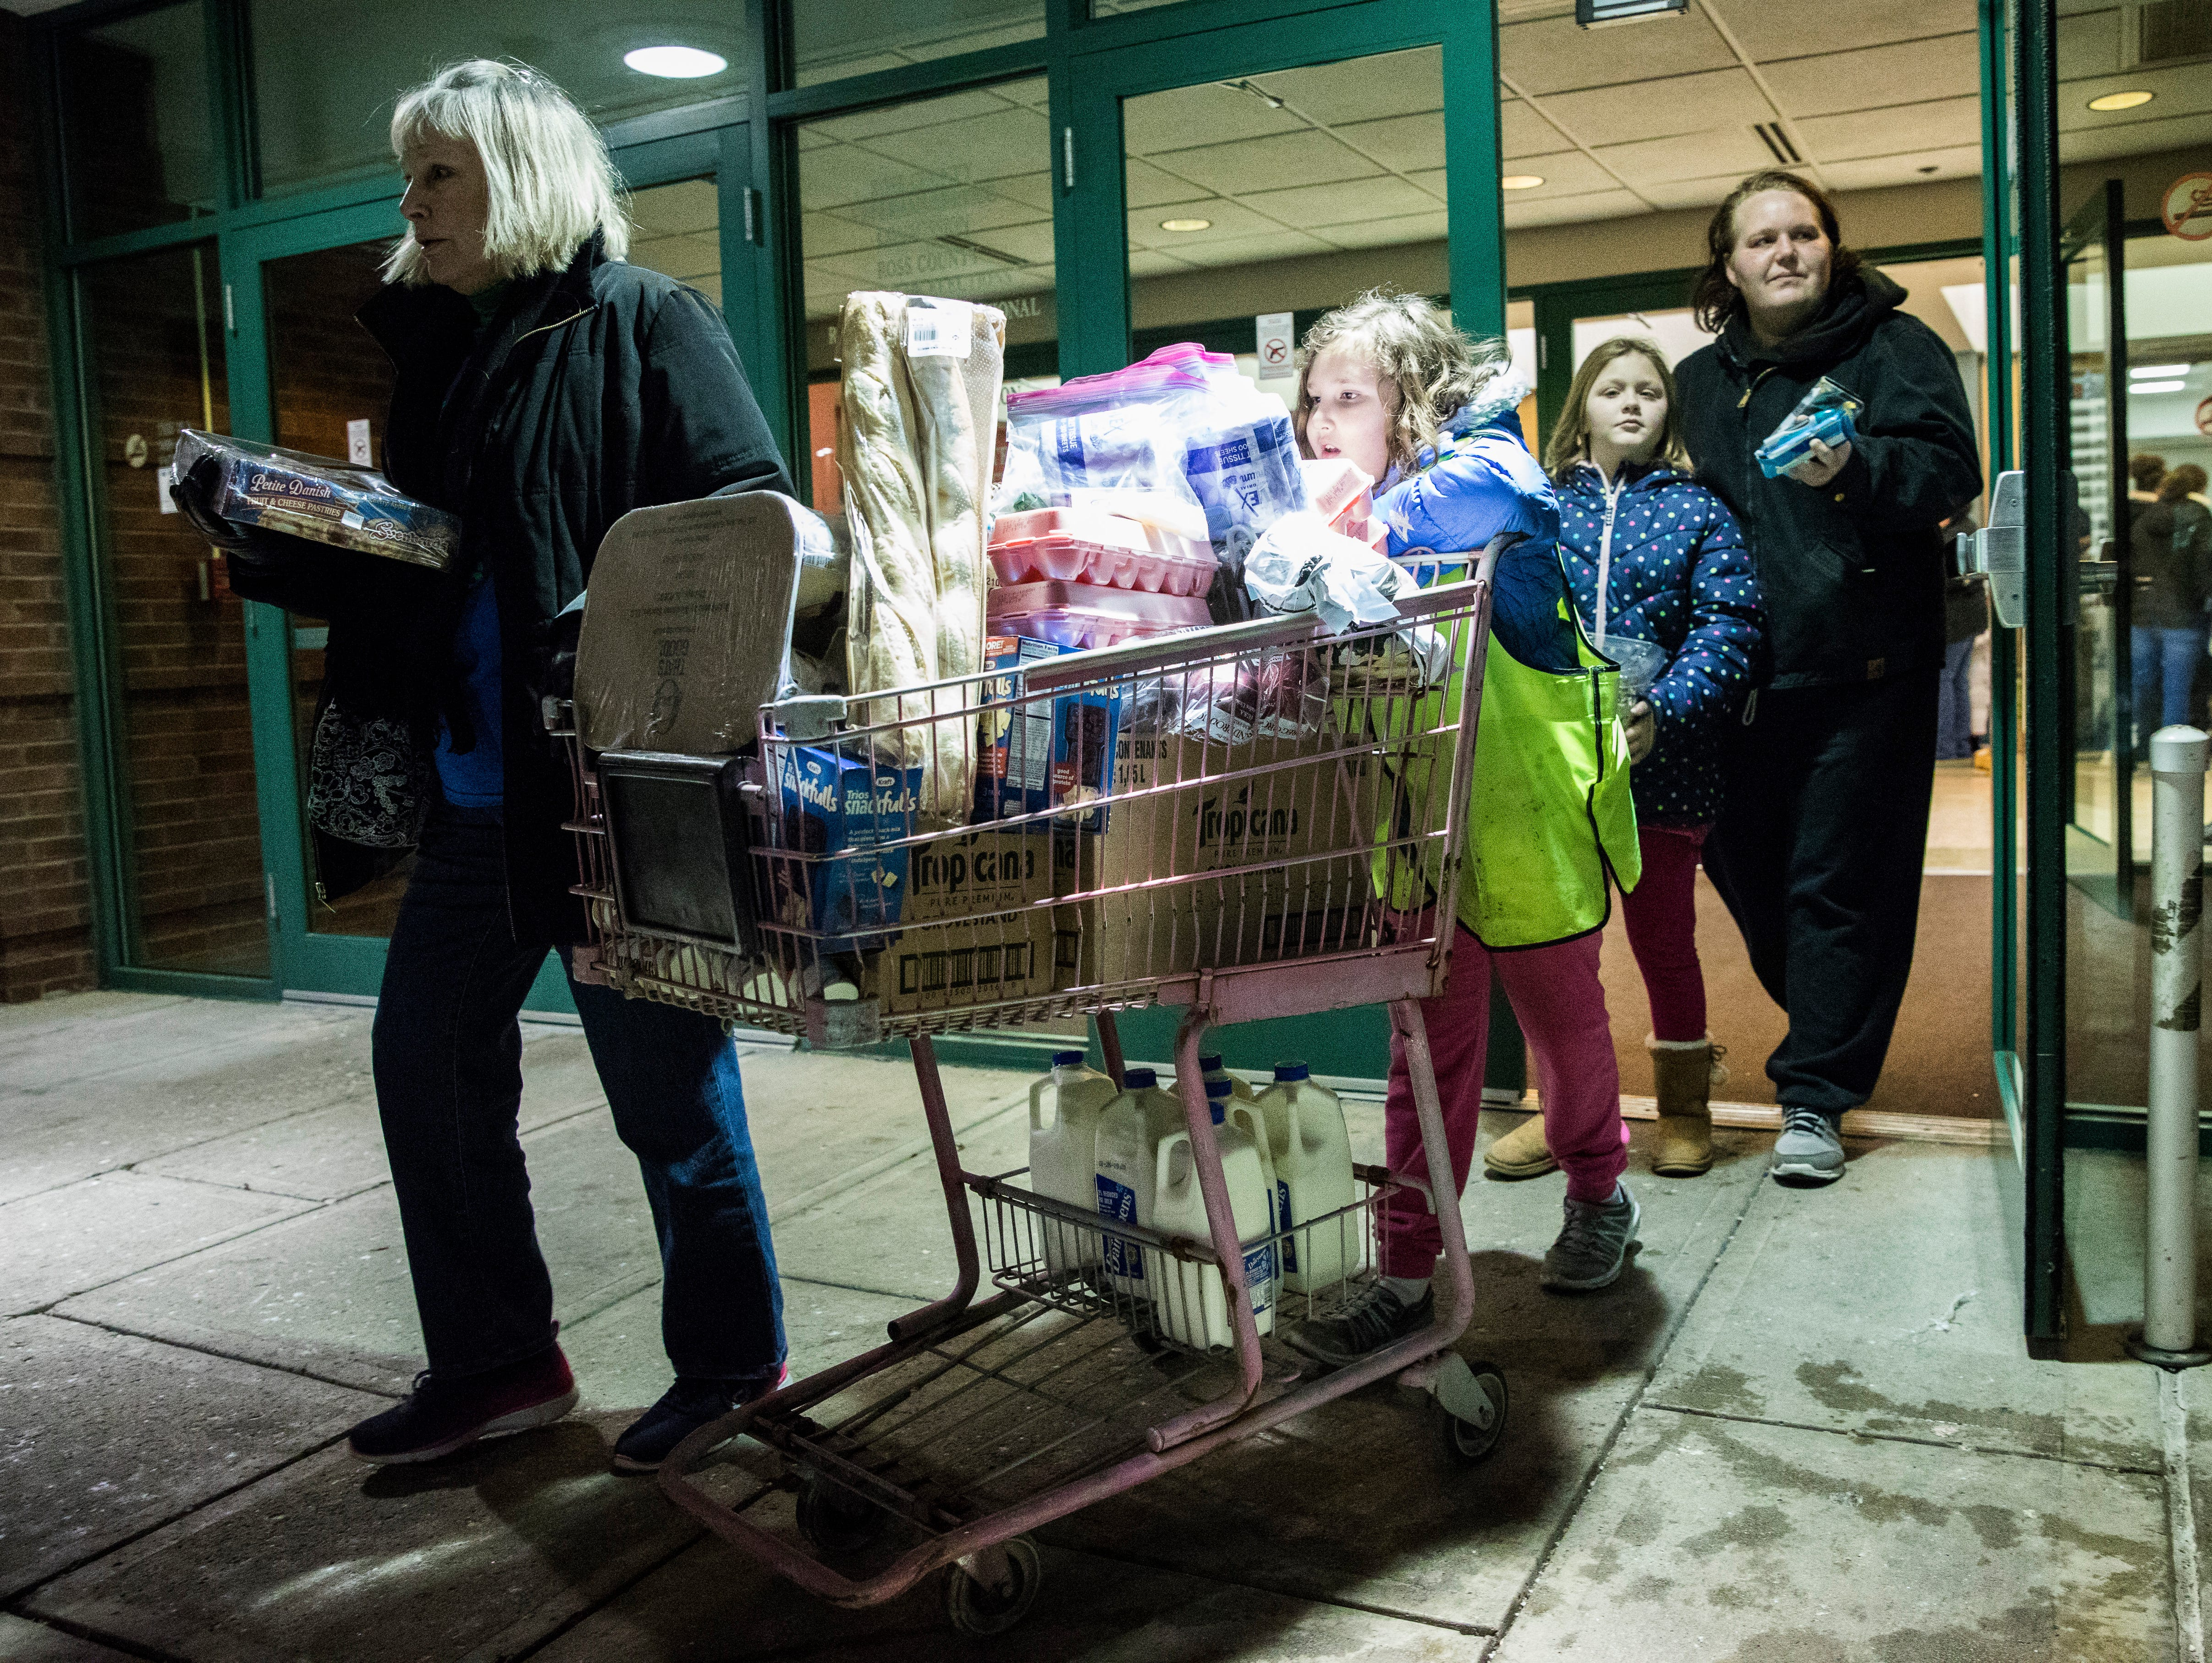 Kelly Ewry and her children leave the Mobile Market with a cart full of food Monday night in Chillicothe, Ohio.